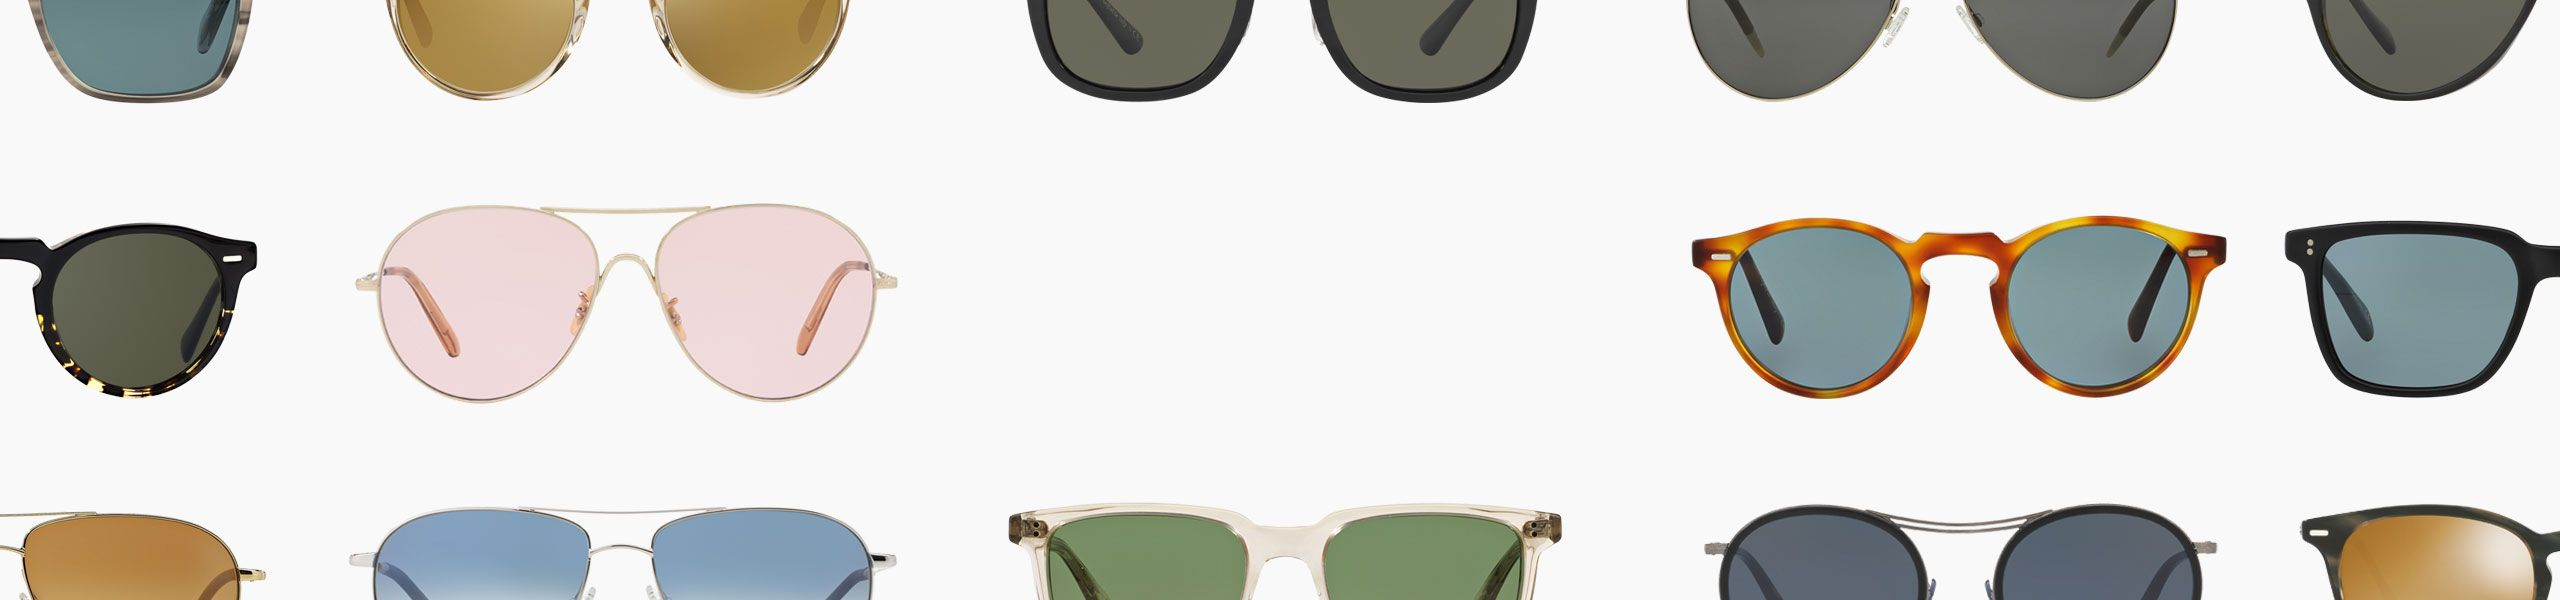 edc5271d71 Sunglasses